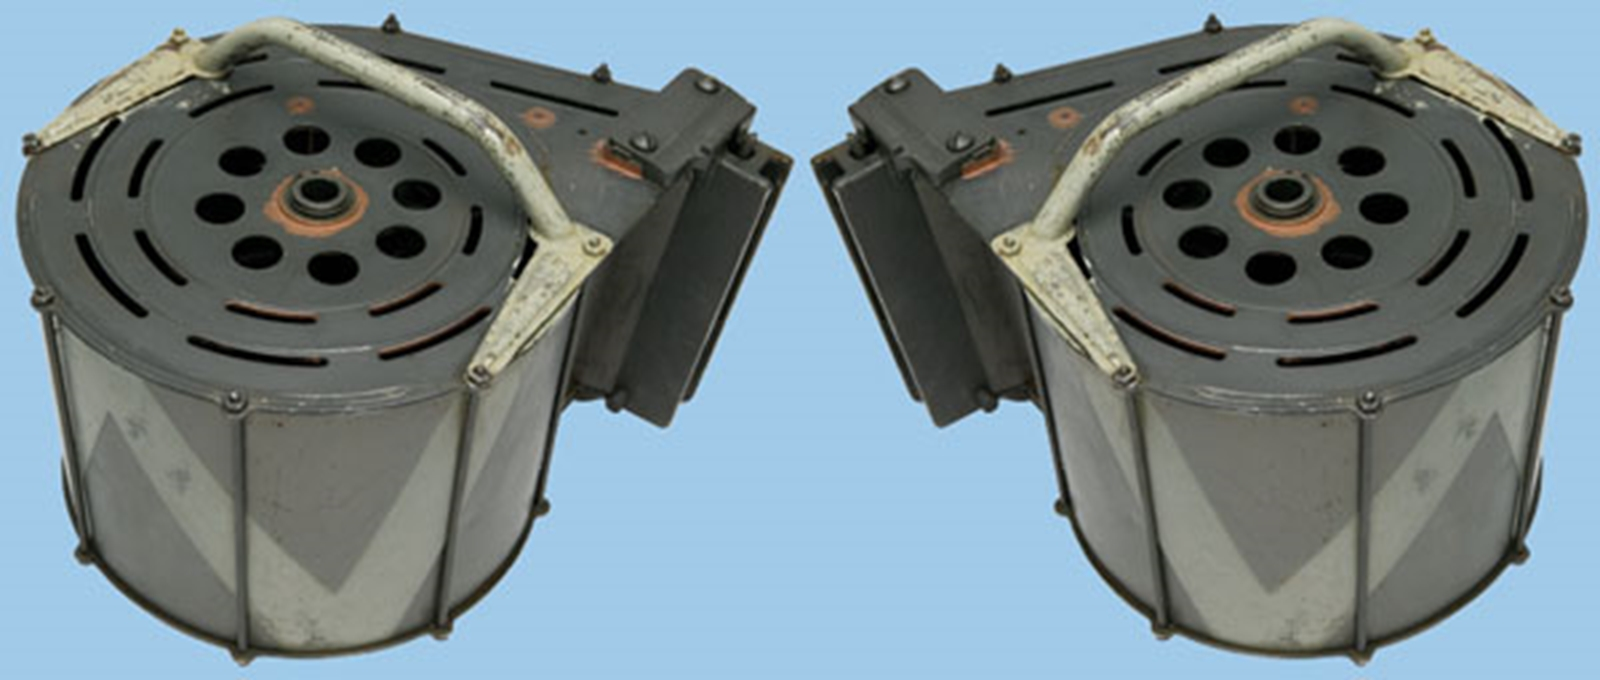 M574 Pair of 20mm Oerlikon Anti-Aircraft Gun Magazines - World Wide Arms